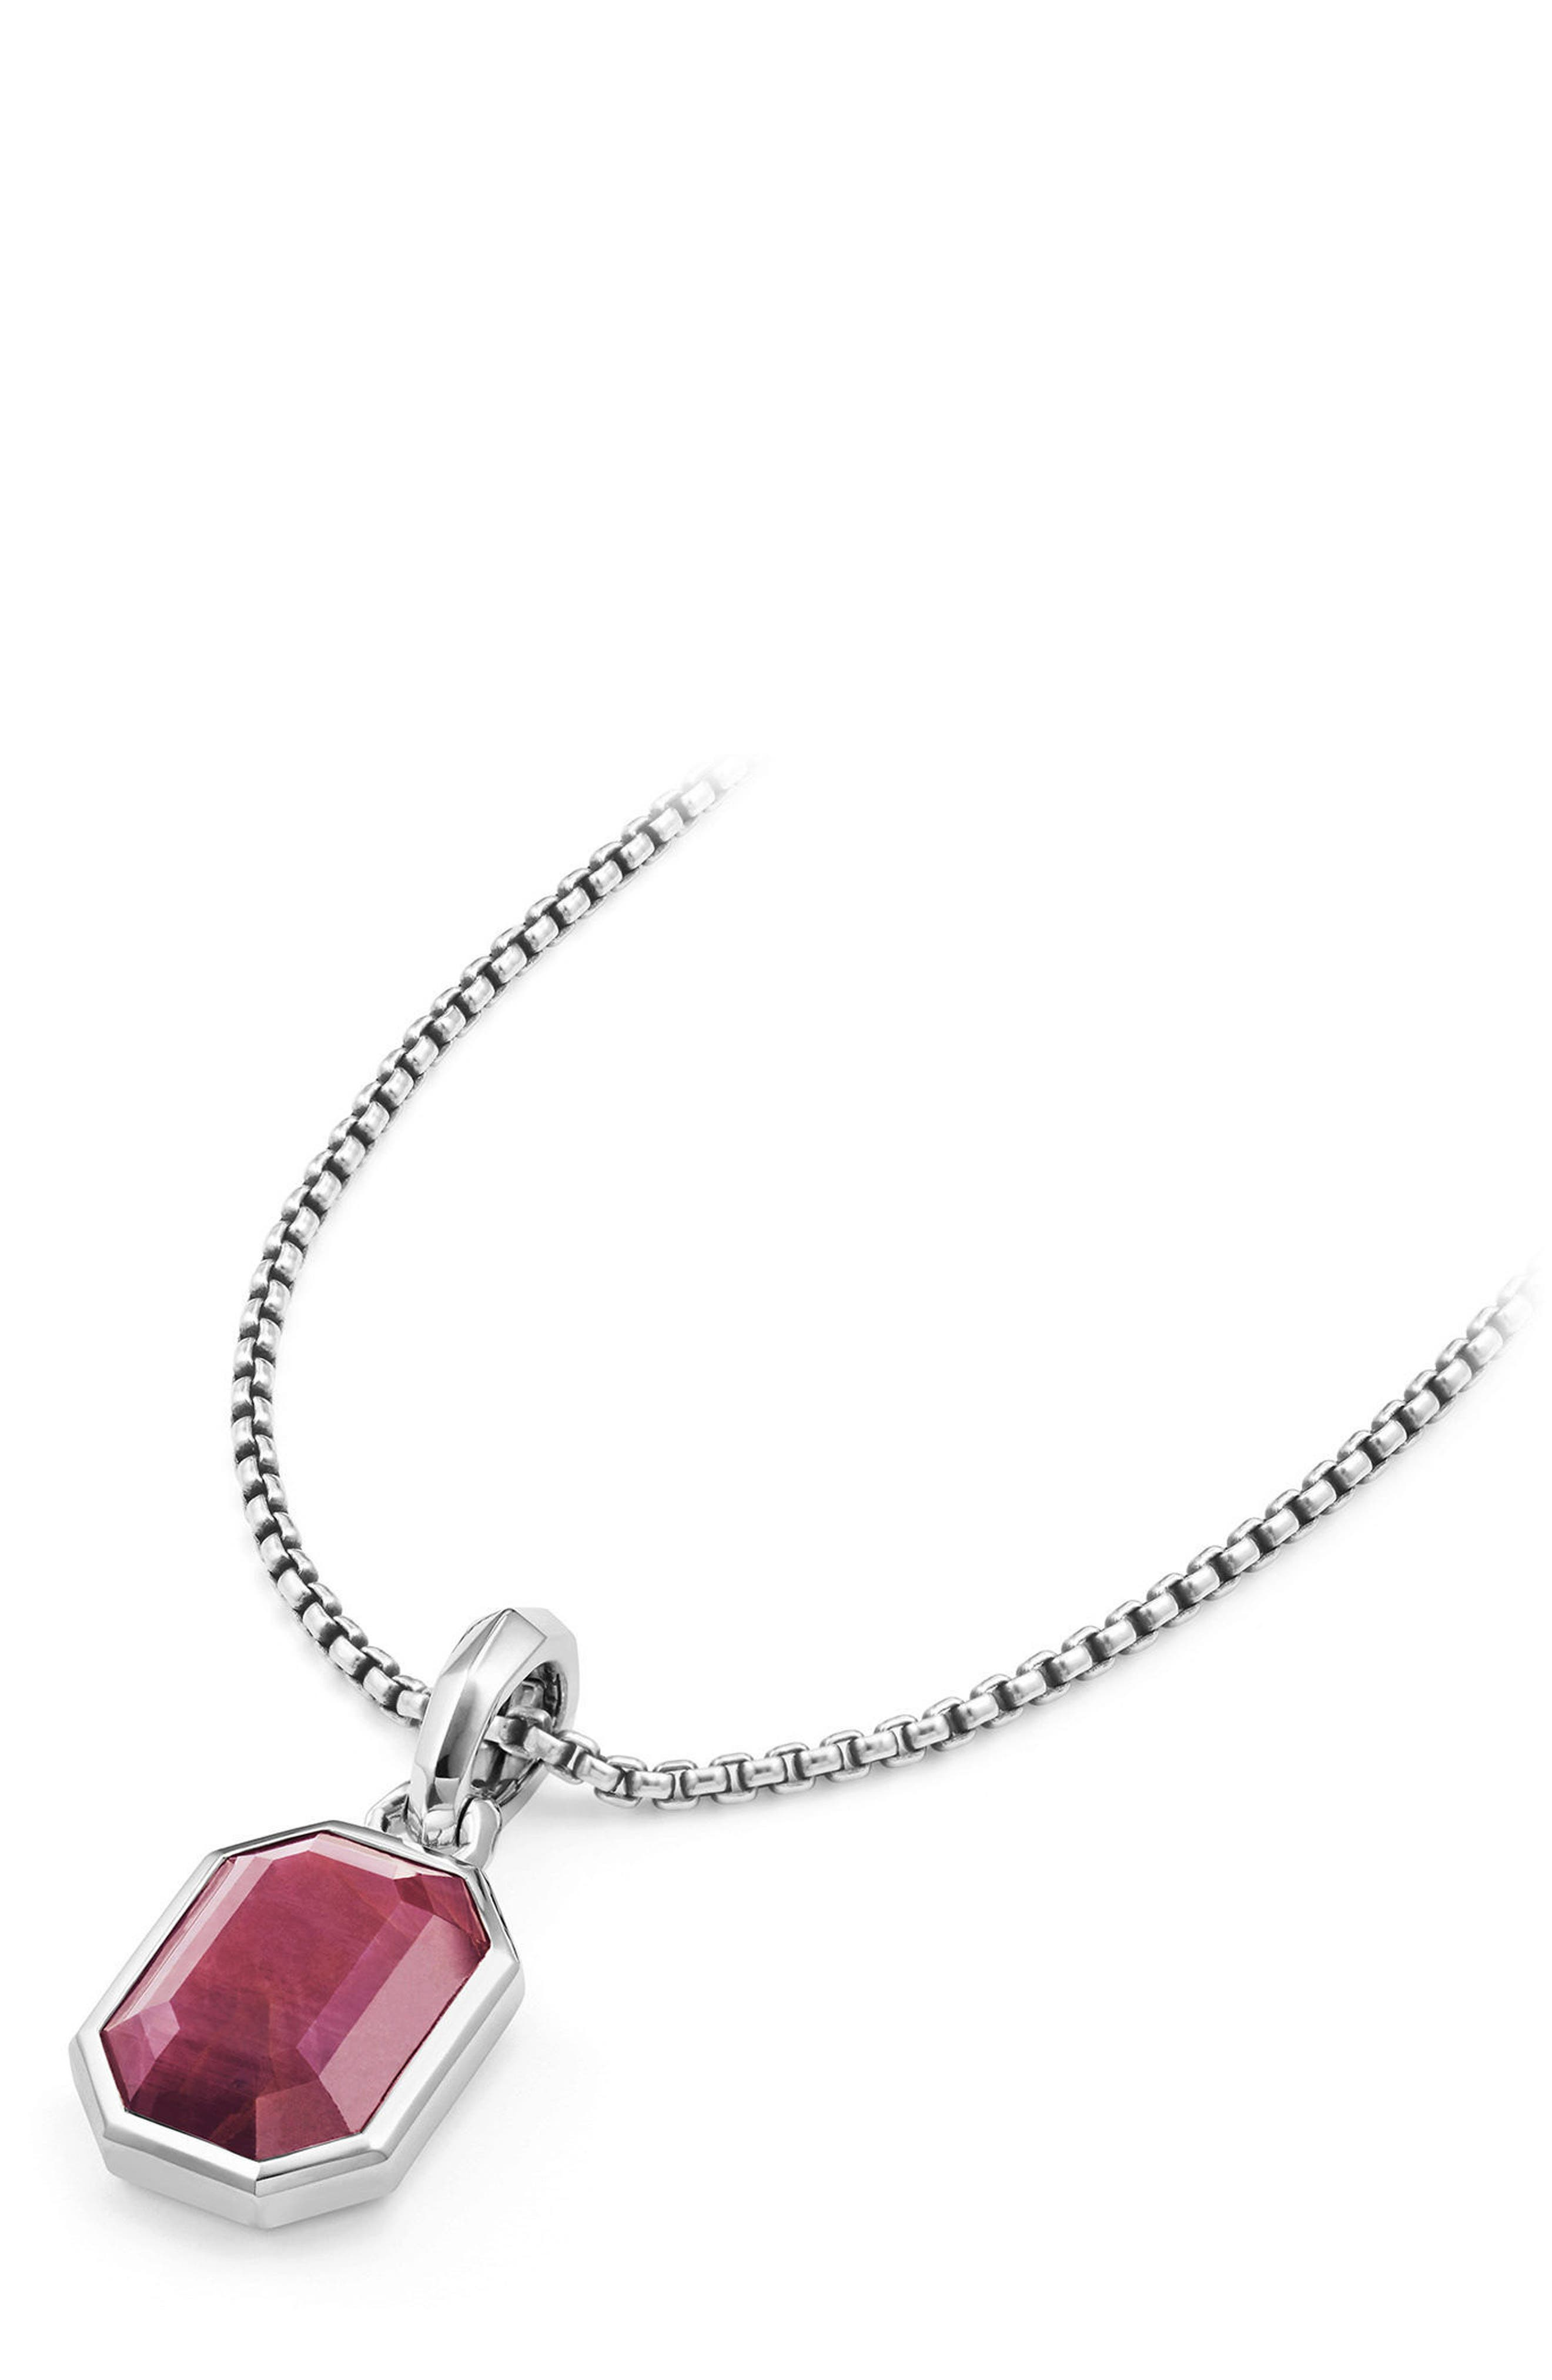 Cable Collectibles Emerald Cut Precious Stone Amulet,                             Alternate thumbnail 3, color,                             Indian Ruby